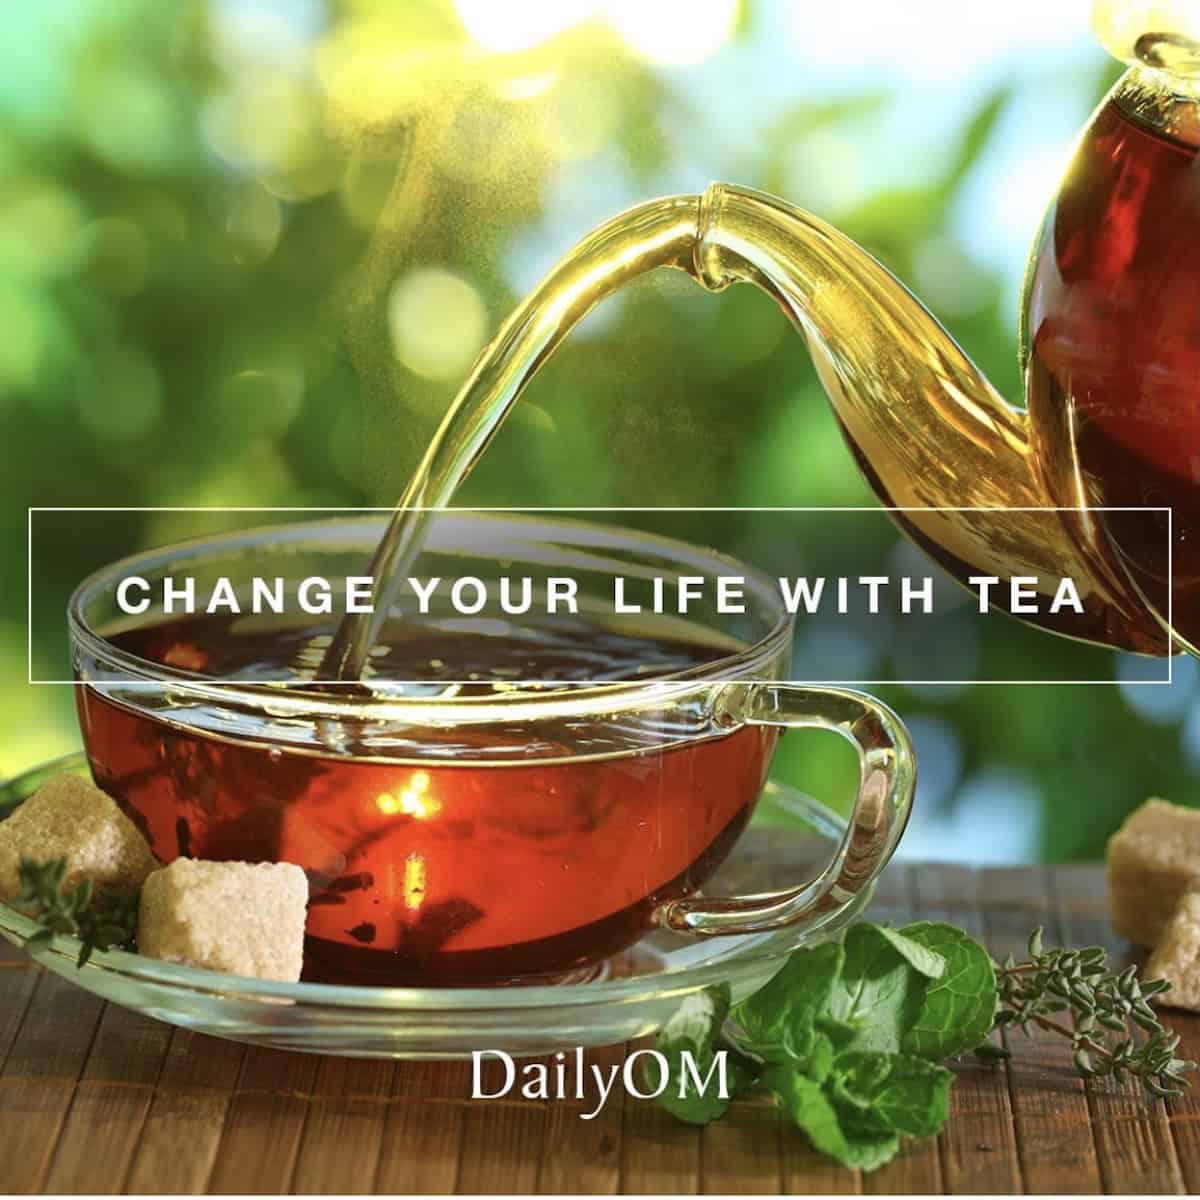 Change your life with tea DailyOm tea course